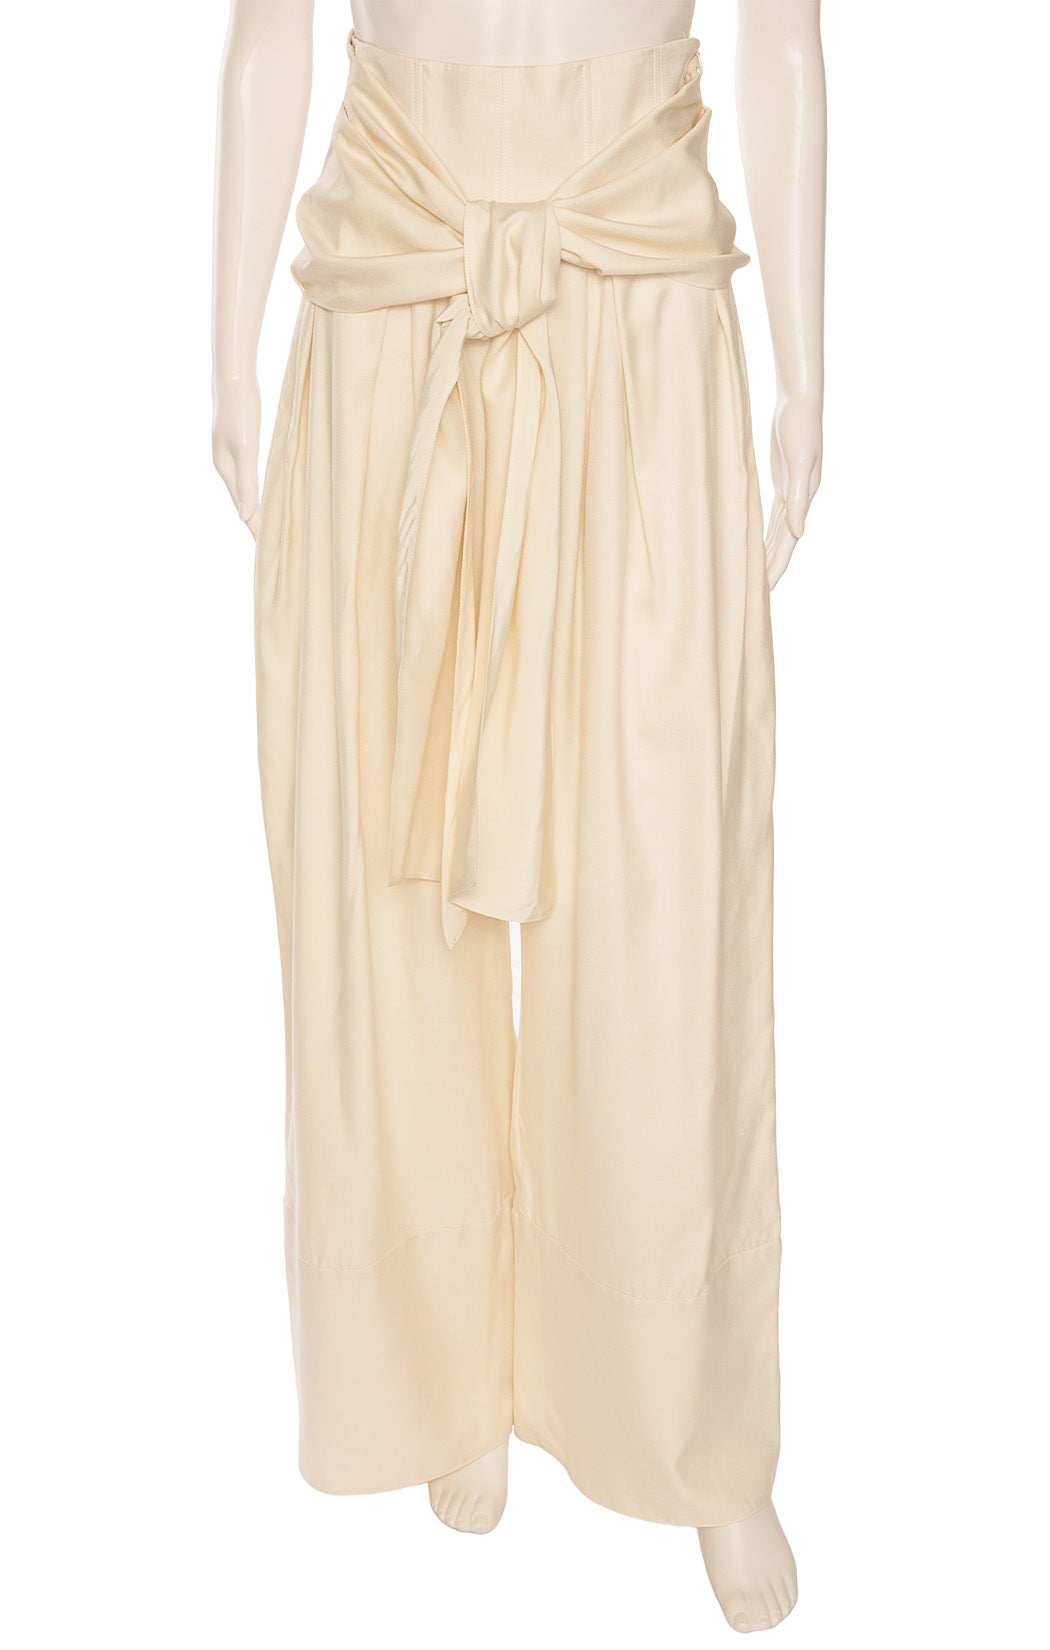 Ivory full pleated  pant with high waist, side zipper, attached belt and very full pant legs